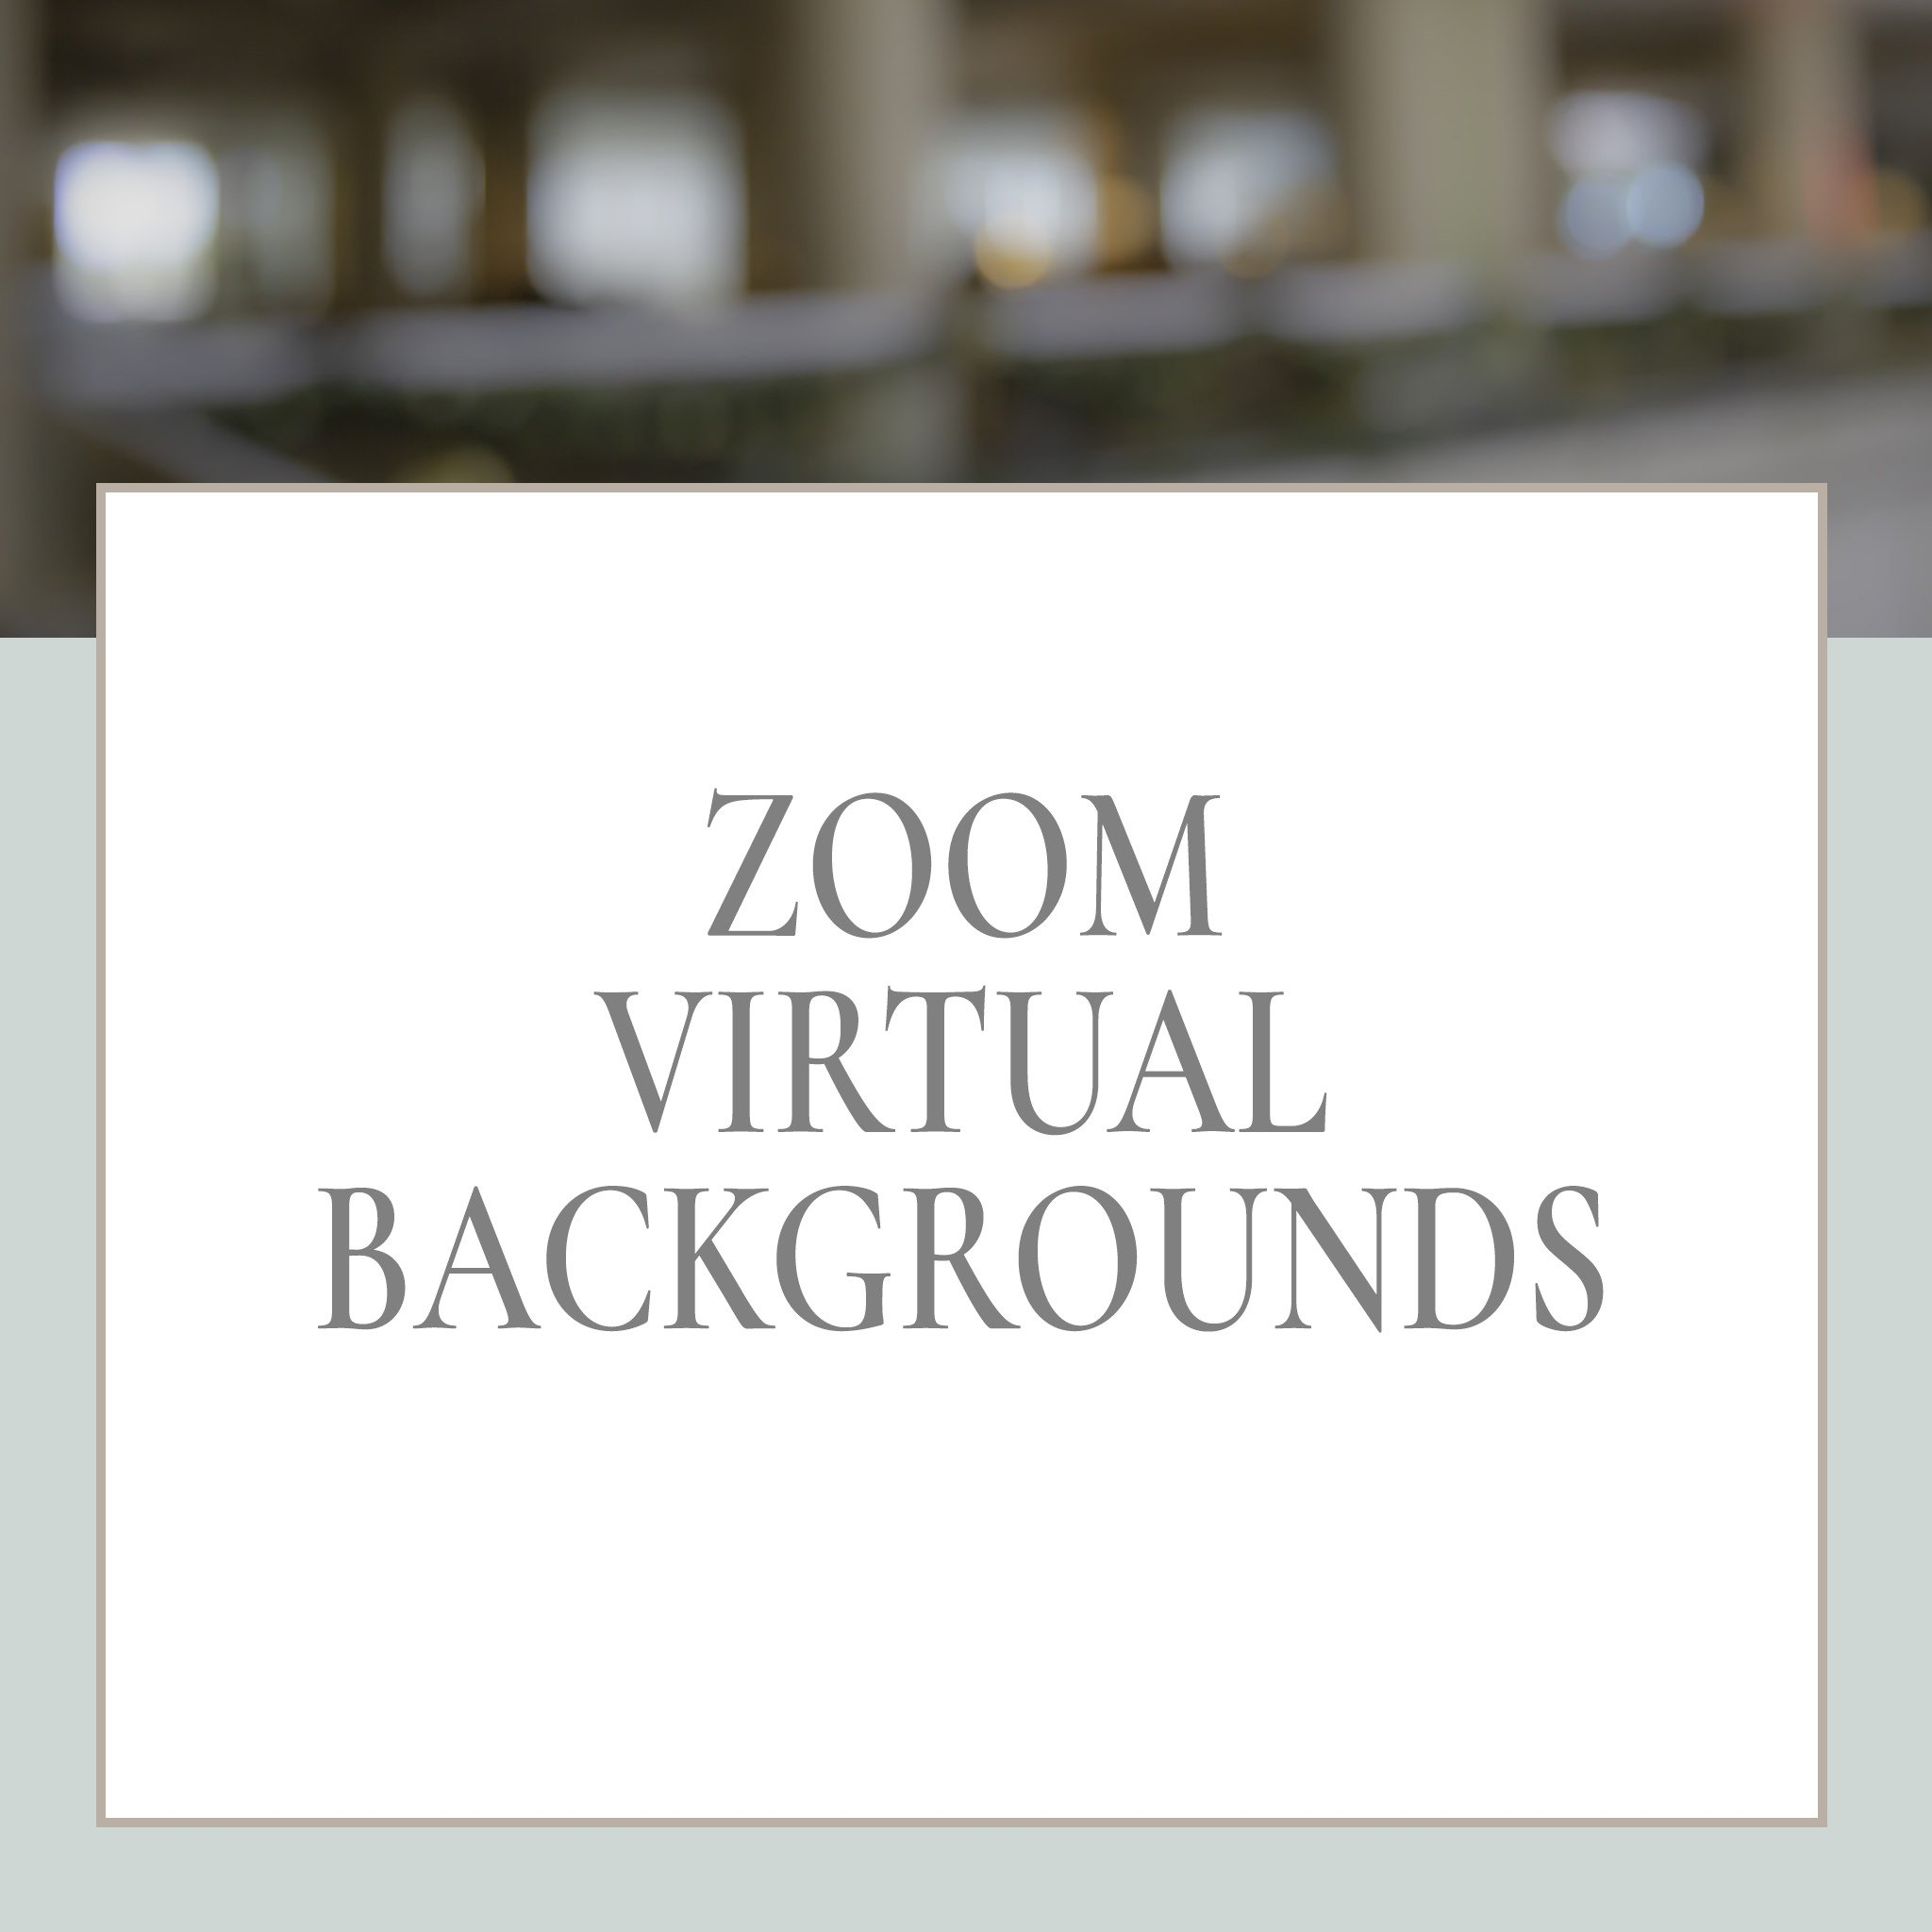 click here to shop for zoom virtual backgrounds in the alana lee photography store